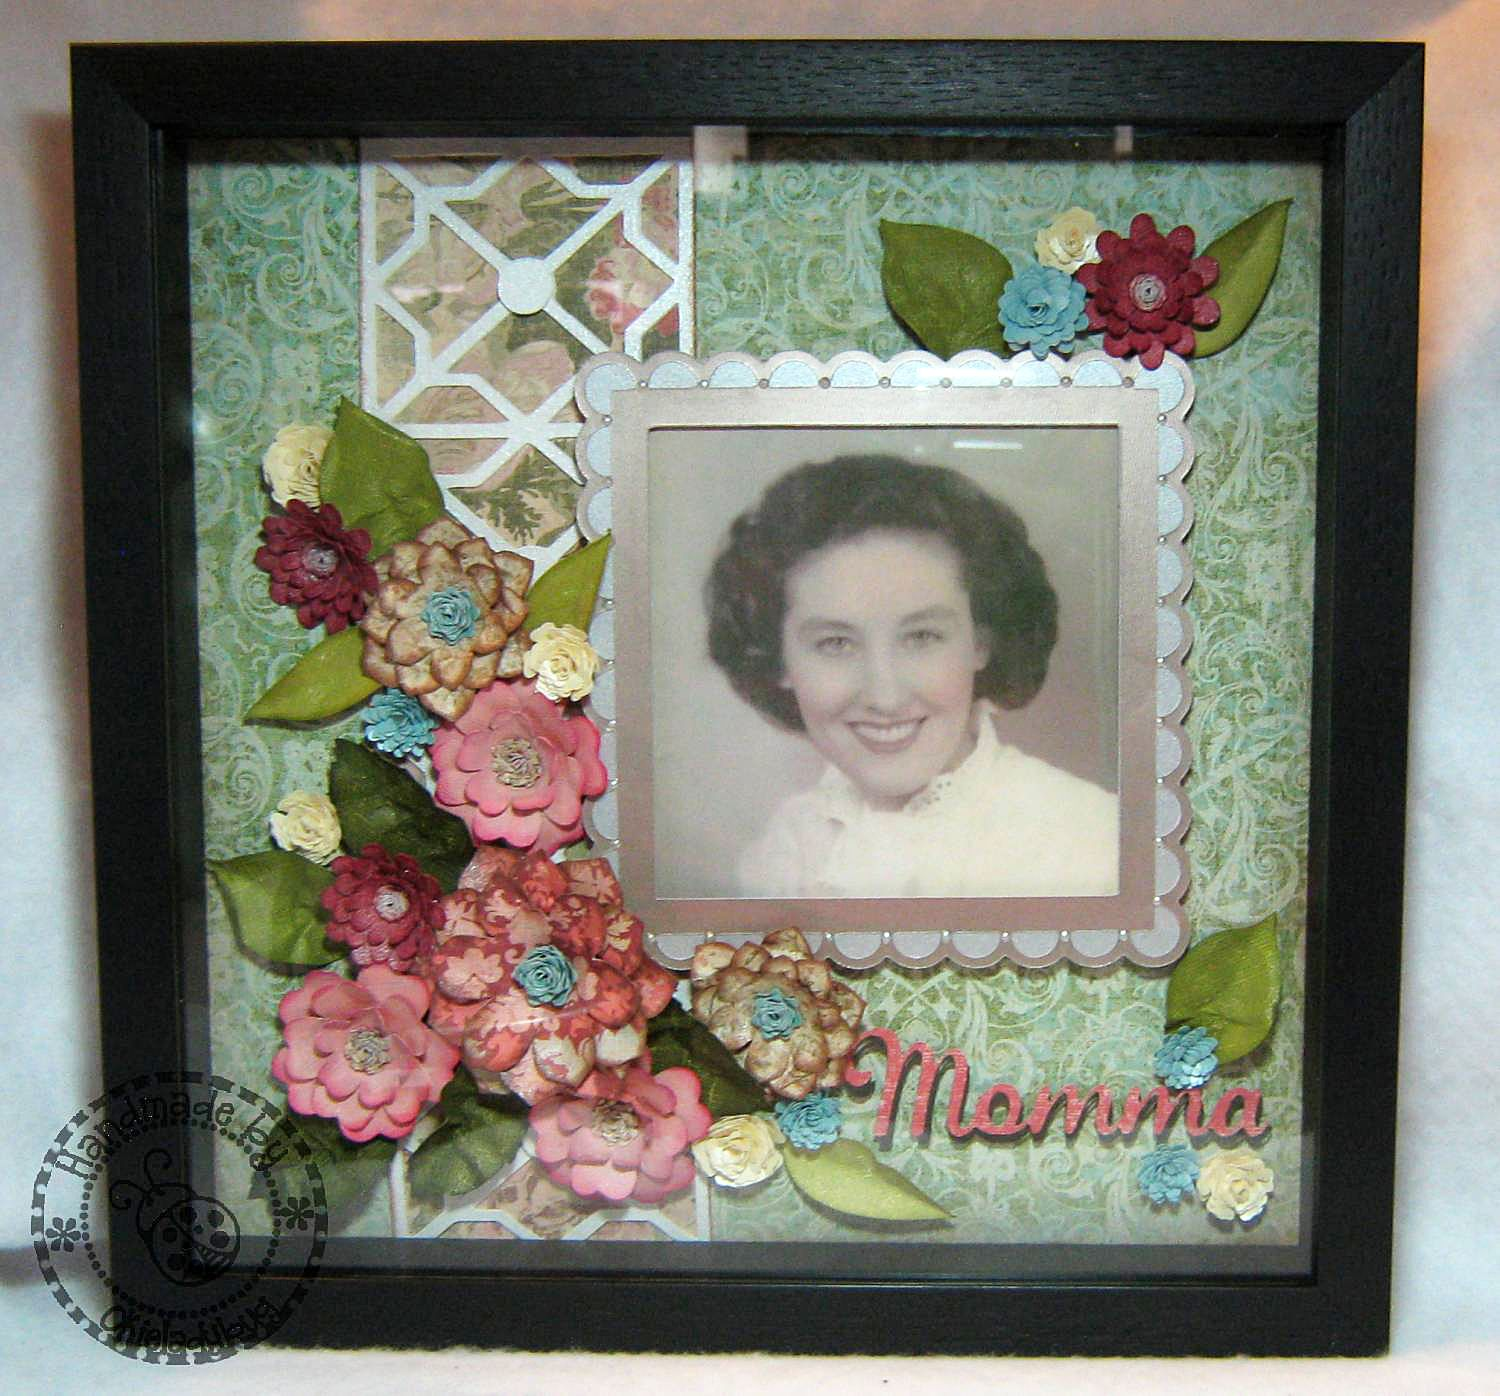 Scrapbook ideas with flowers - Beautiful Mother S Day Shadow Box Featuring Paper Flowers